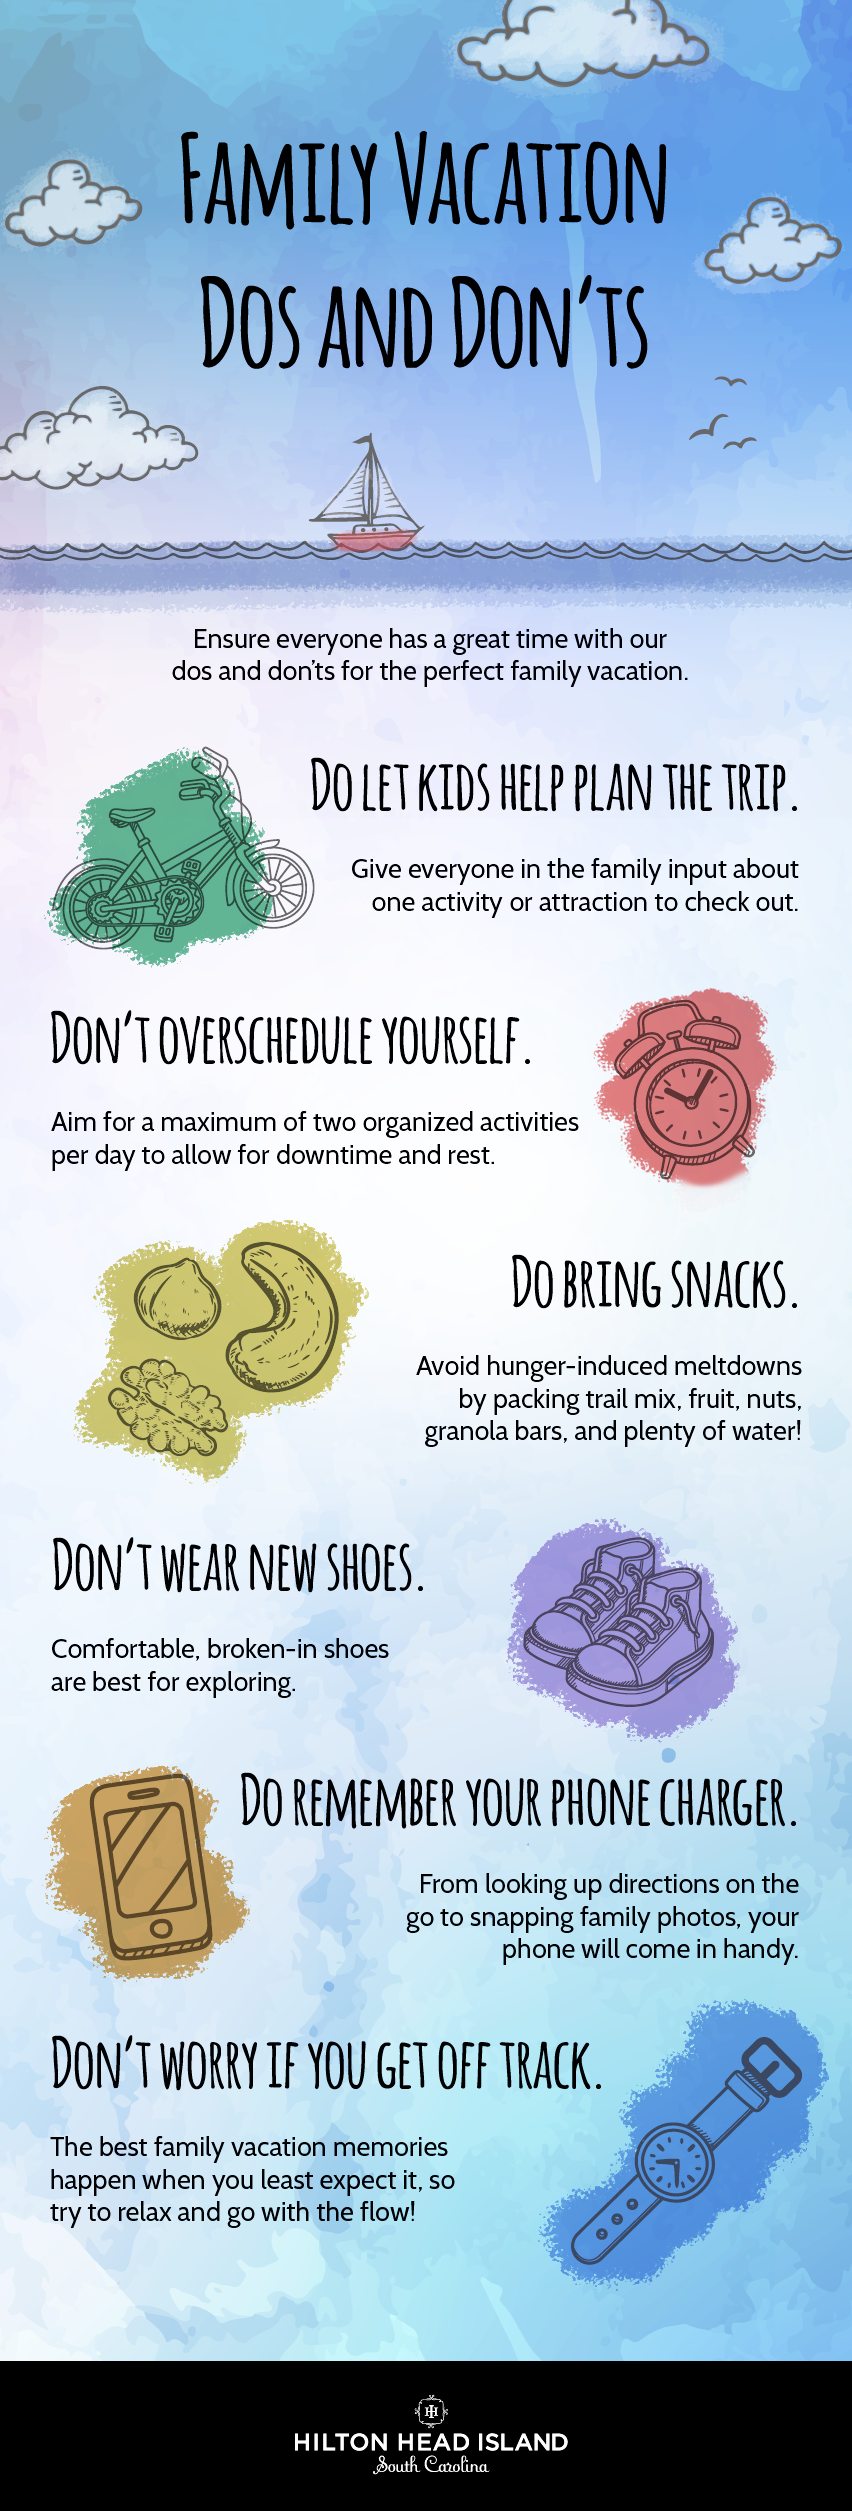 Family vacation dos and don'ts infographic